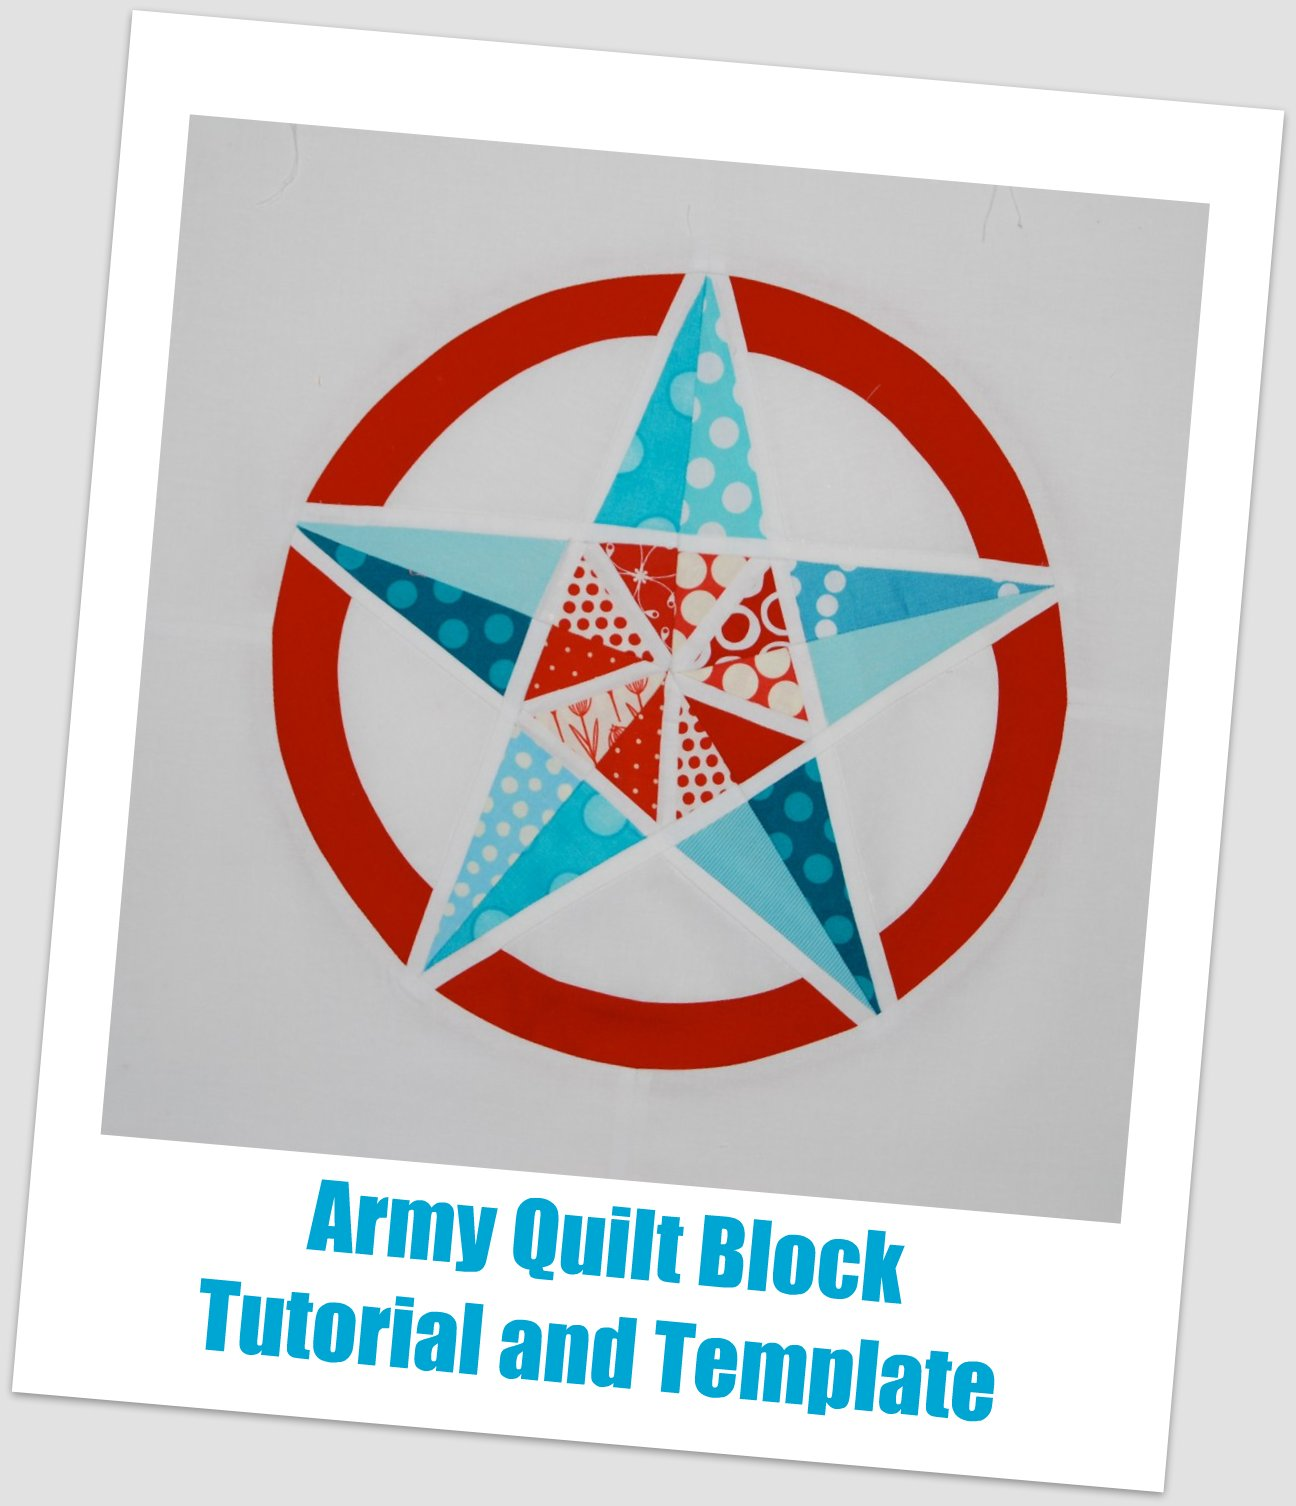 Army Star Quilt Block Tutorial and Template